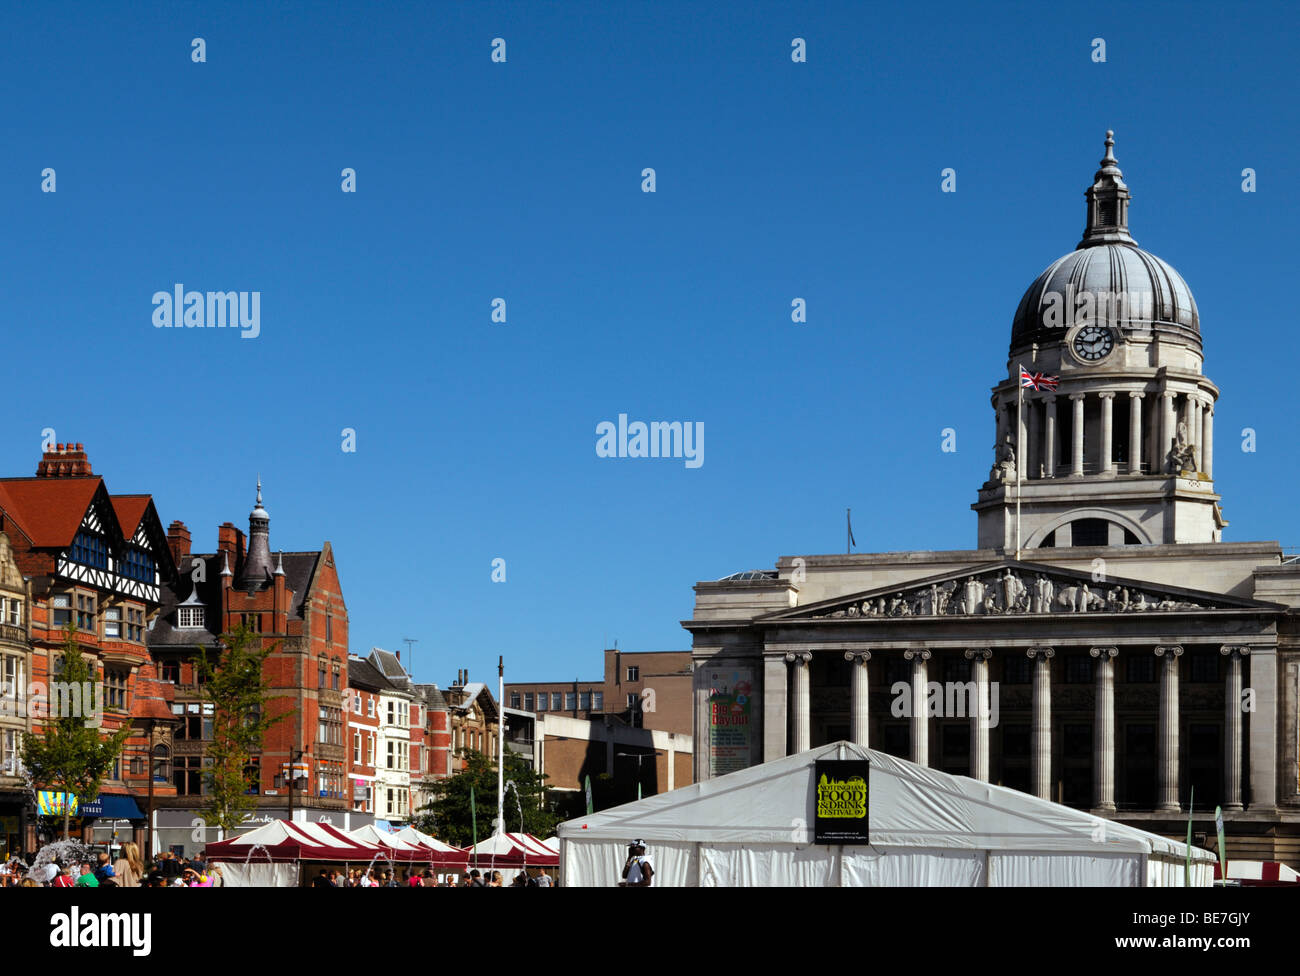 The Town Hall that houses the Galleries of Justice in Market Square, Nottingham, England - Stock Image